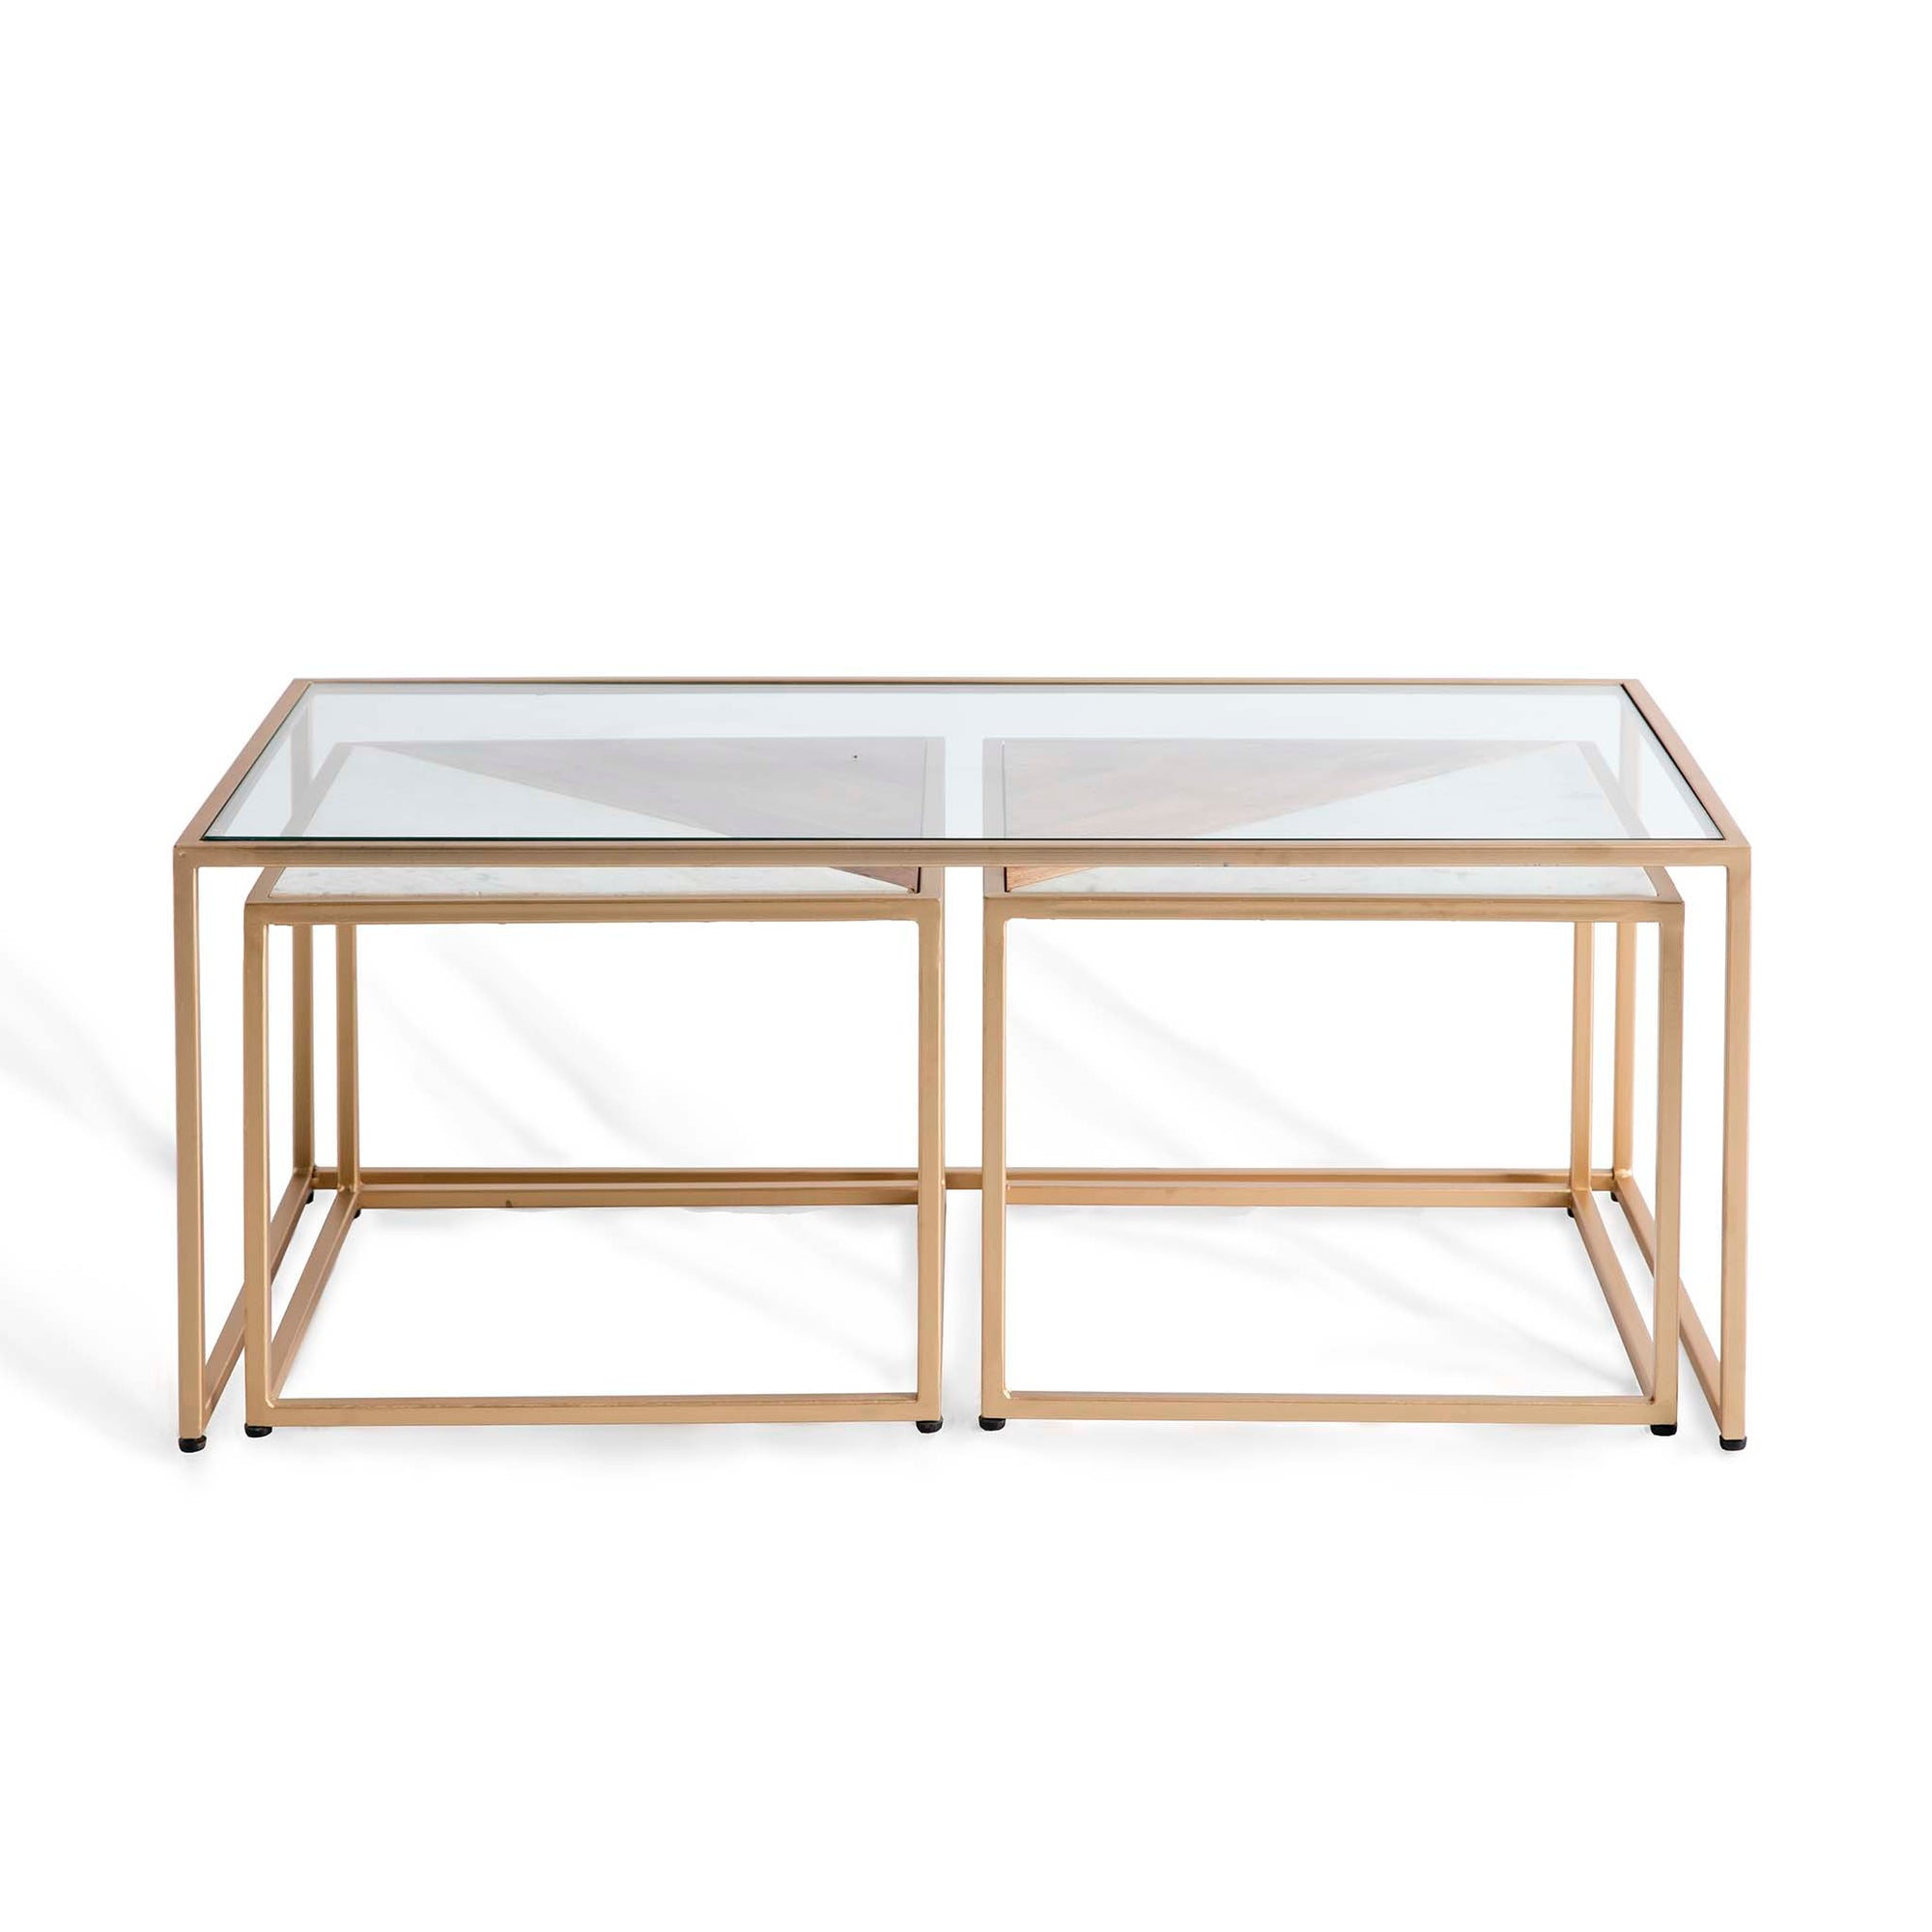 Kandla Glass Topped Coffee Table with White Marble & Wood Nested Tables and Gold Bases by Roseland Furniture